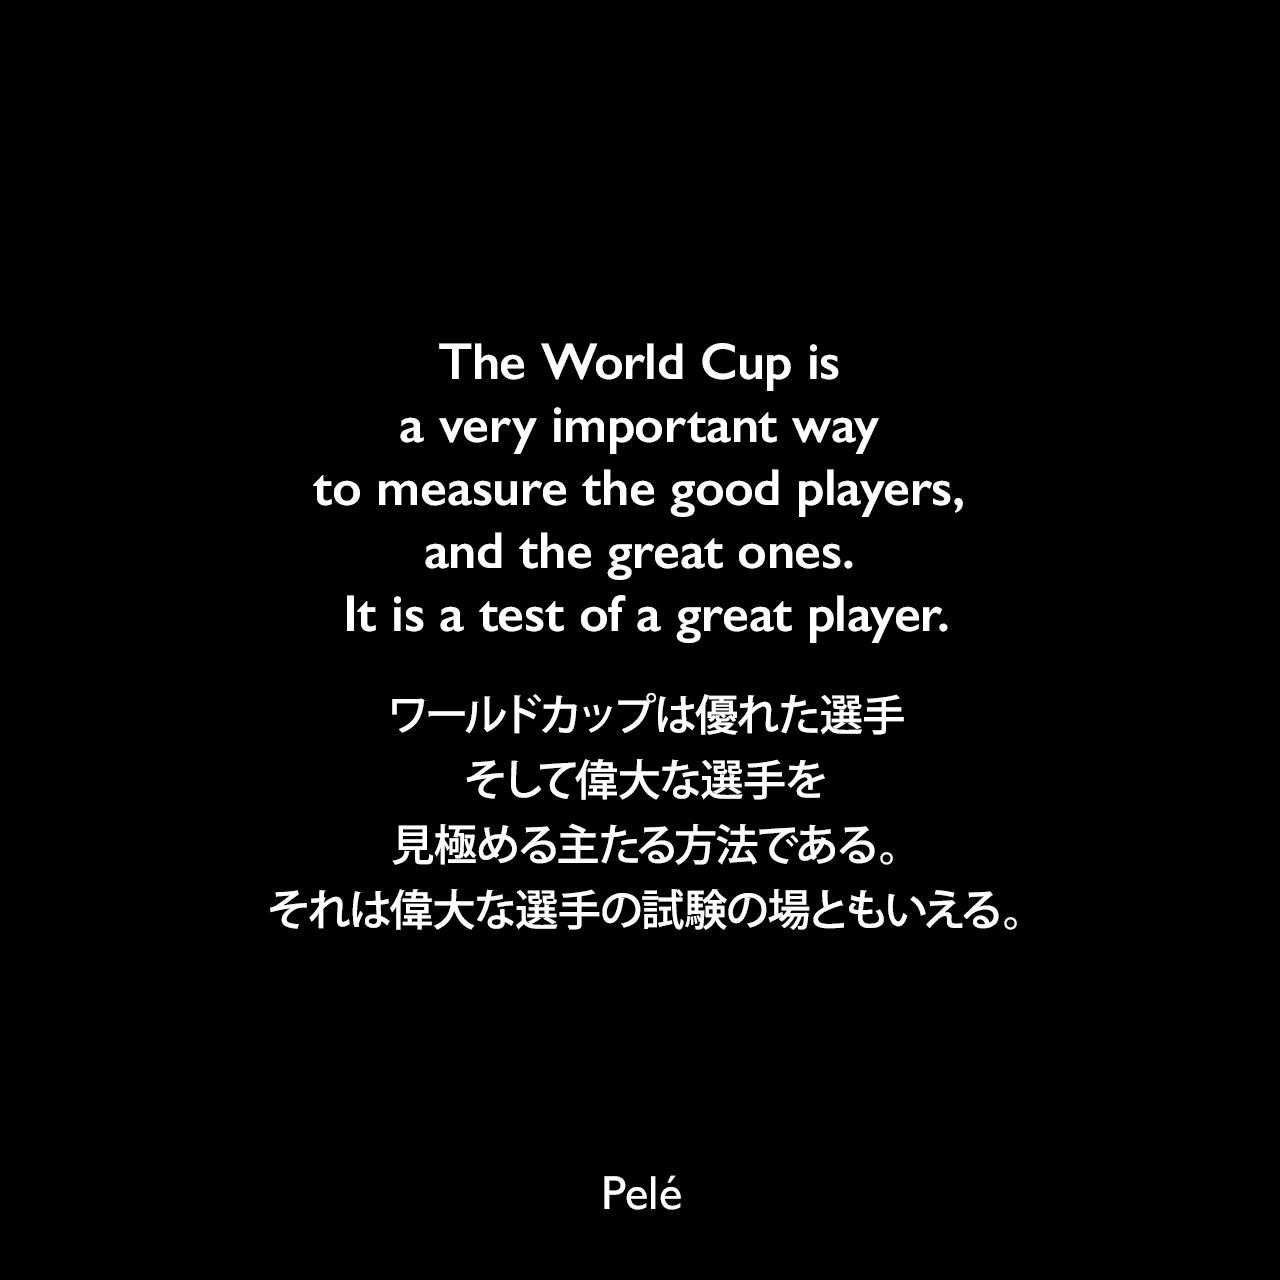 The World Cup is a very important way to measure the good players, and the great ones. It is a test of a great player.ワールドカップは優れた選手、そして偉大な選手を見極める主たる方法である。それは偉大な選手の試験の場ともいえる。Pelé